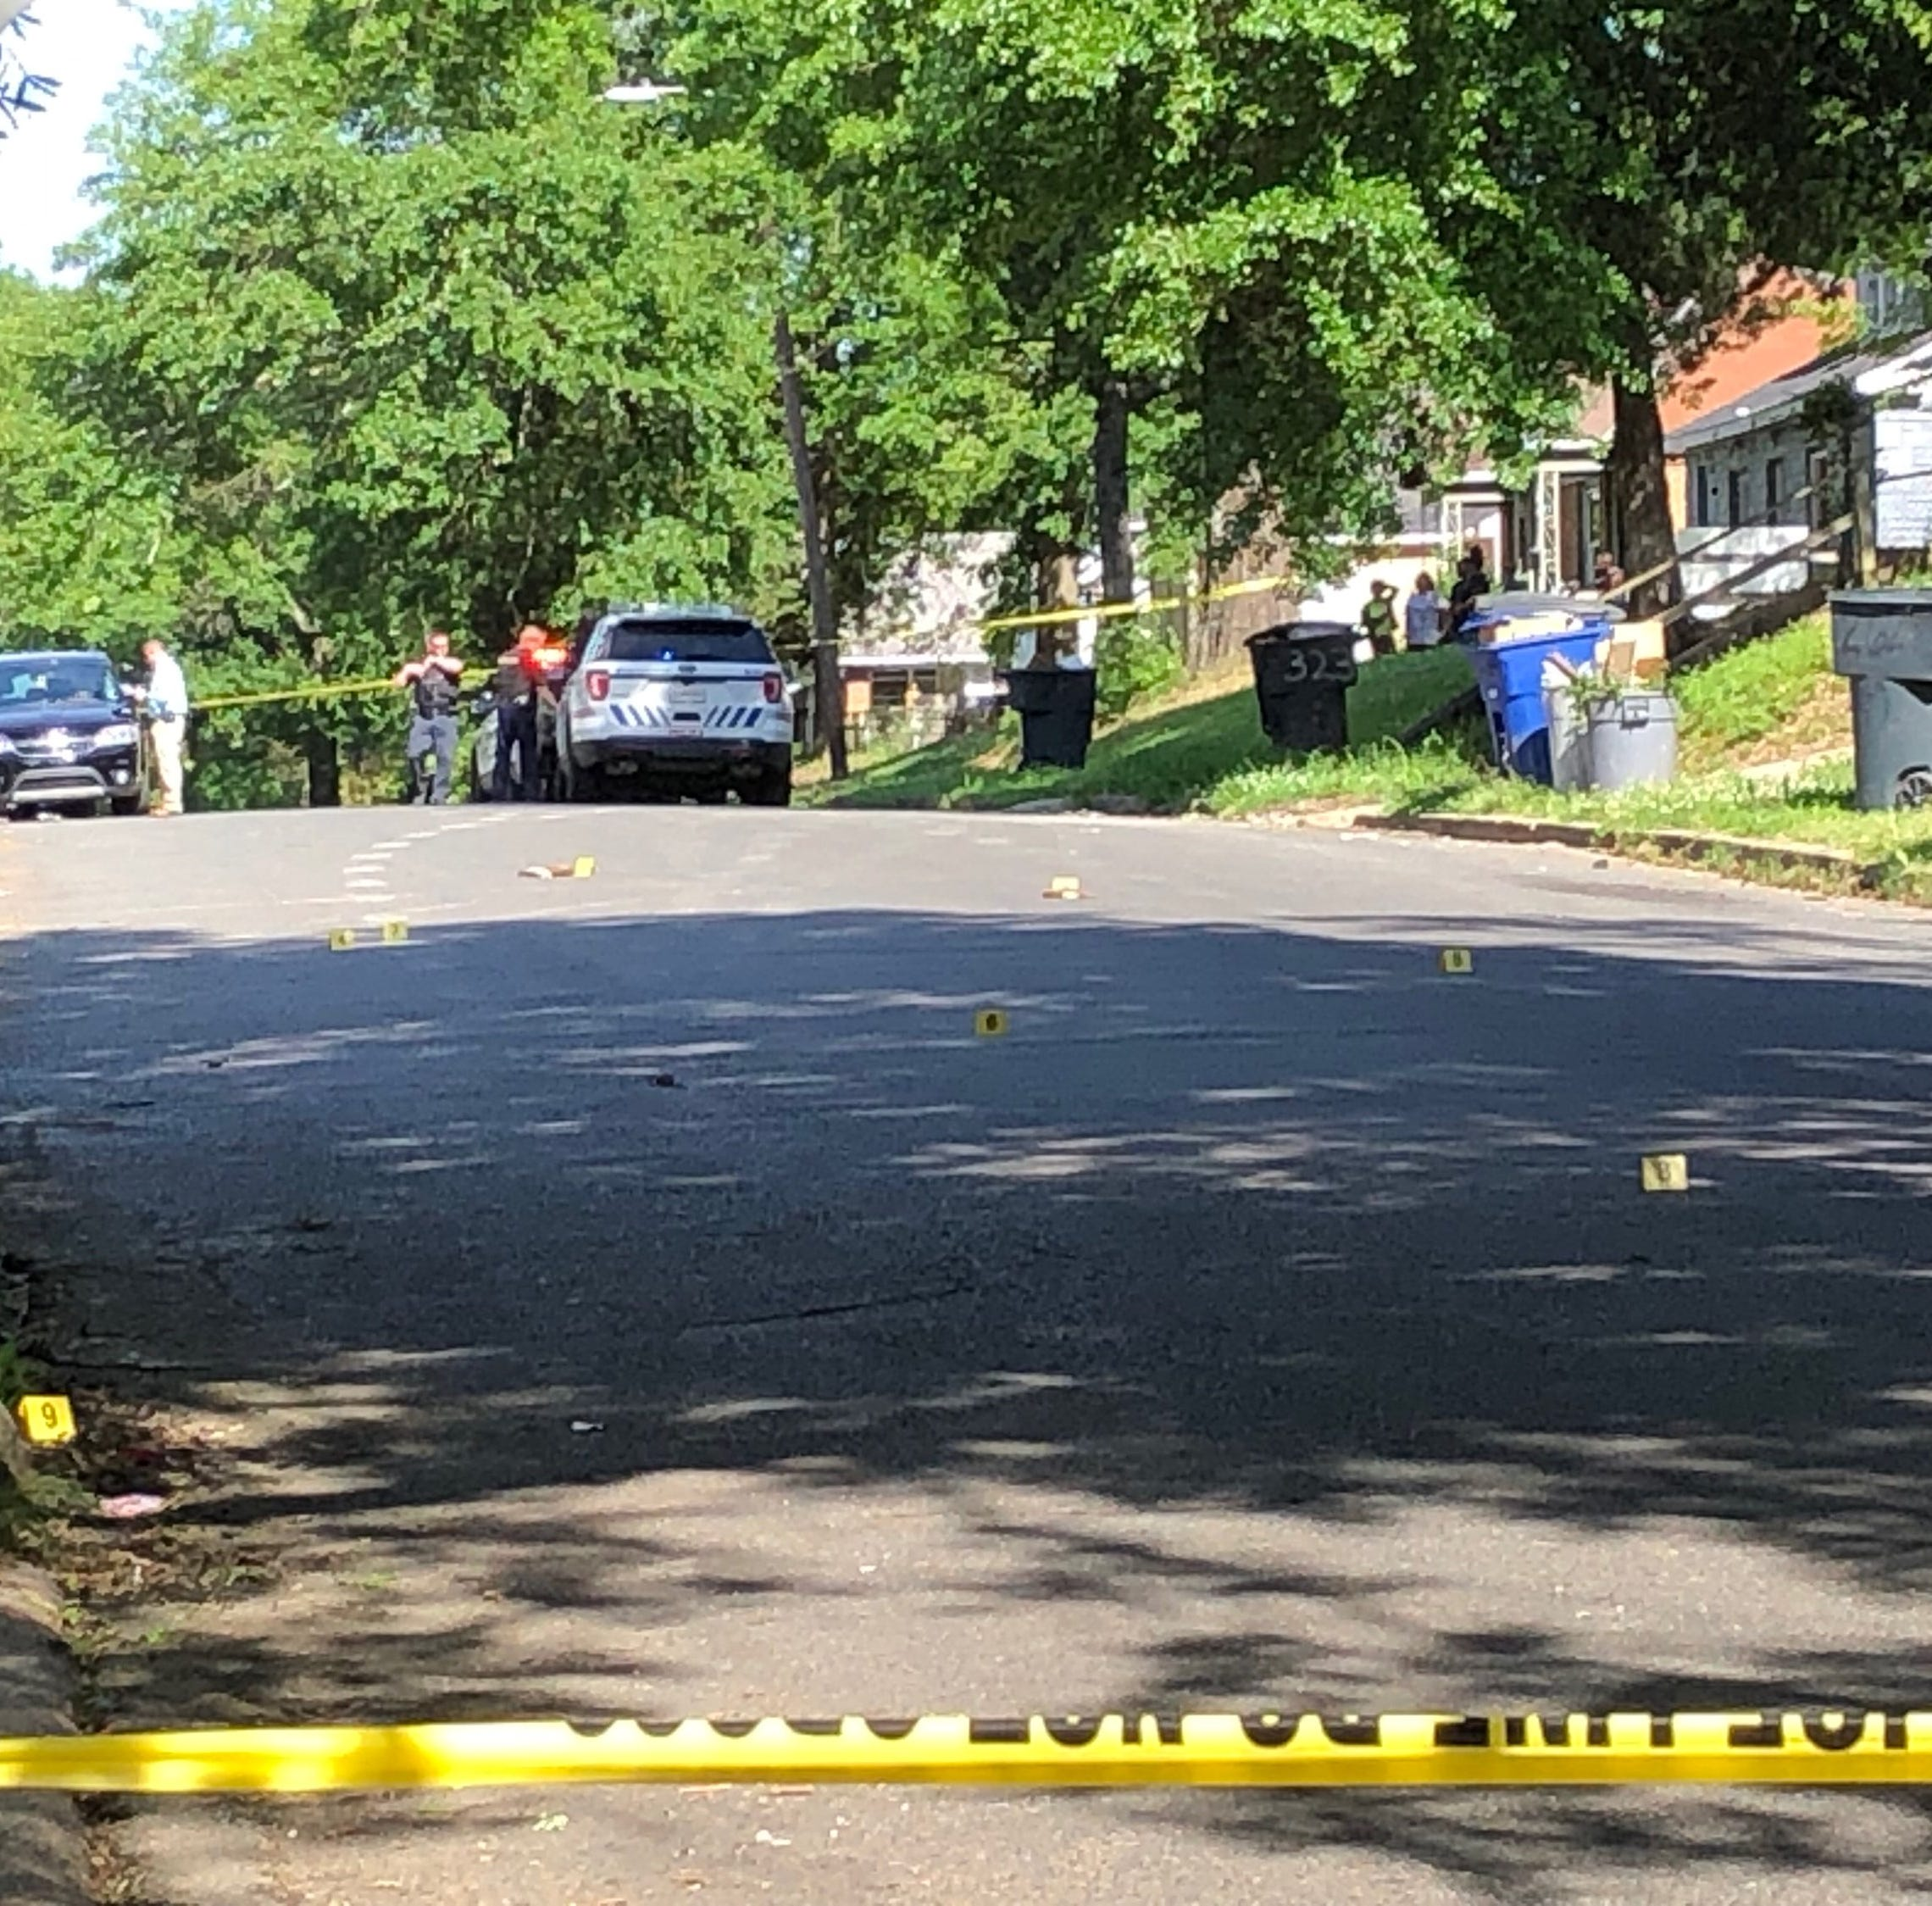 Breaking: Reported shooting in Shreveport's Highland neighborhood